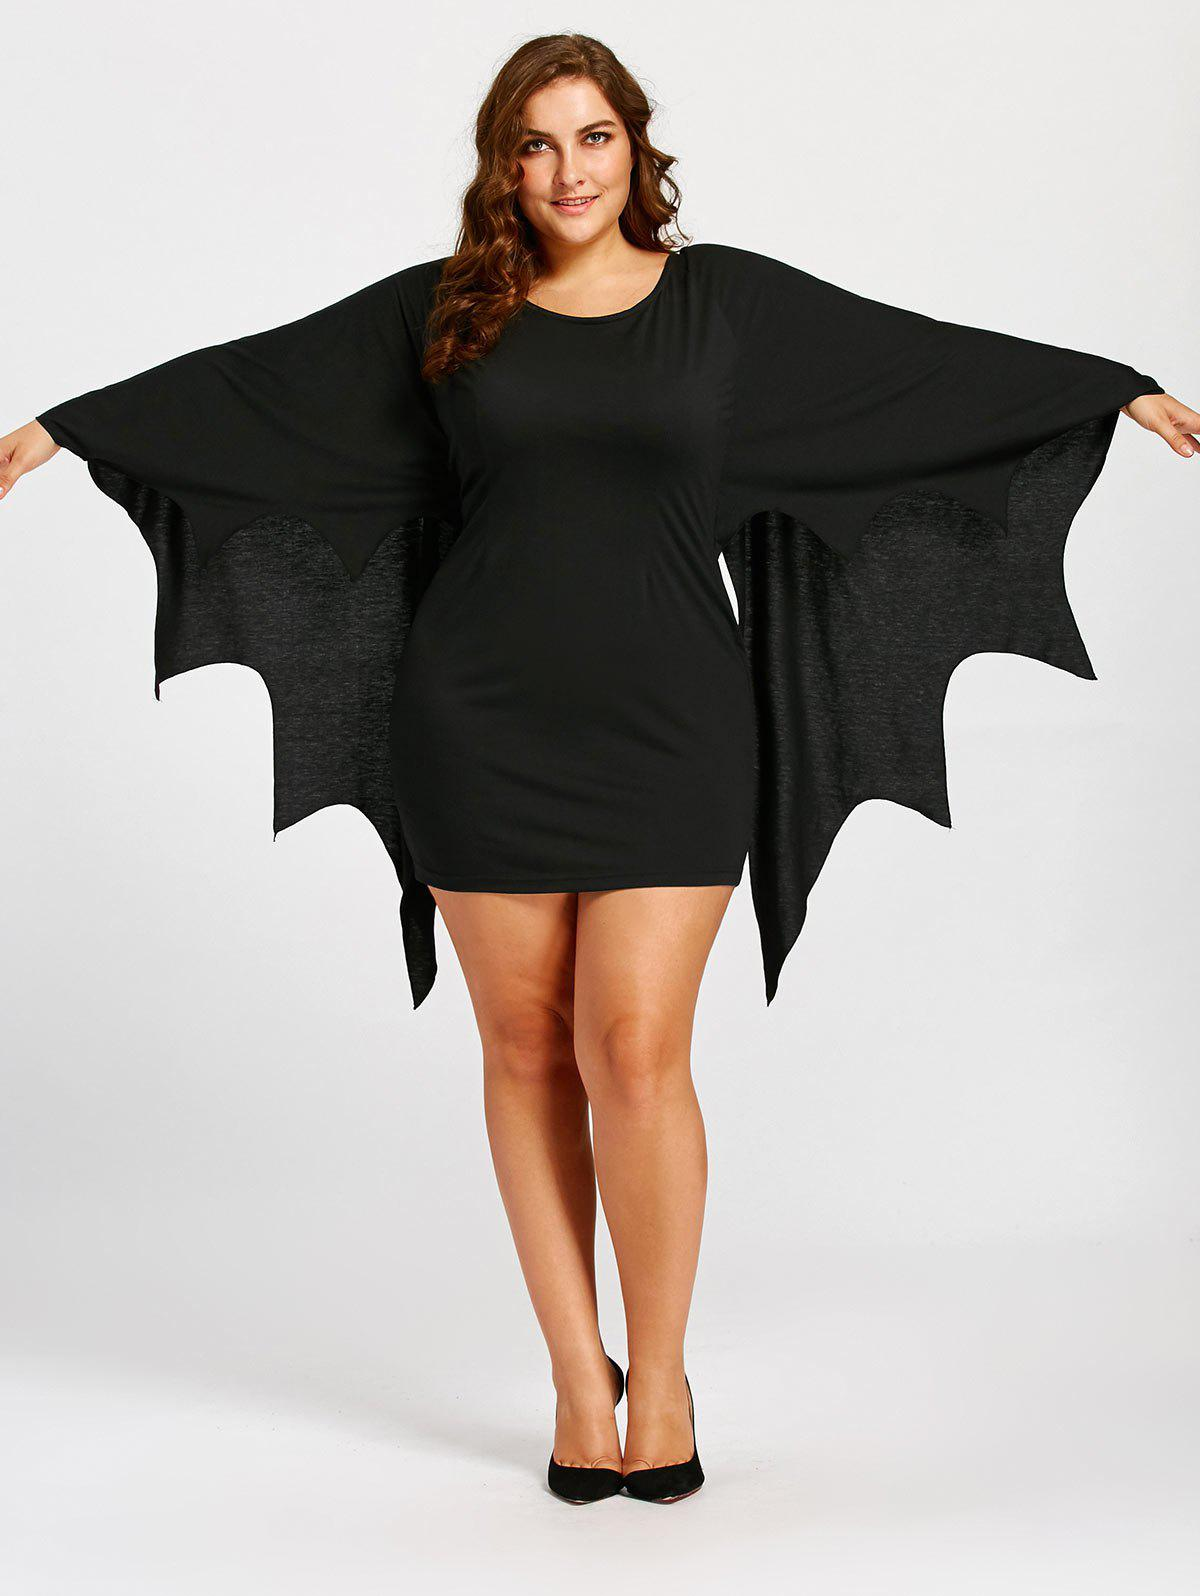 Bat Wings Plus Size Tunic DressWOMEN<br><br>Size: 4XL; Color: BLACK; Style: Novelty; Material: Polyester,Spandex; Silhouette: Straight; Dresses Length: Mini; Neckline: Round Collar; Sleeve Type: Batwing Sleeve; Sleeve Length: 3/4 Length Sleeves; Waist: Natural; Pattern Type: Others; Elasticity: Elastic; With Belt: No; Season: Fall,Spring; Weight: 0.4600kg; Package Contents: 1 x Dress;